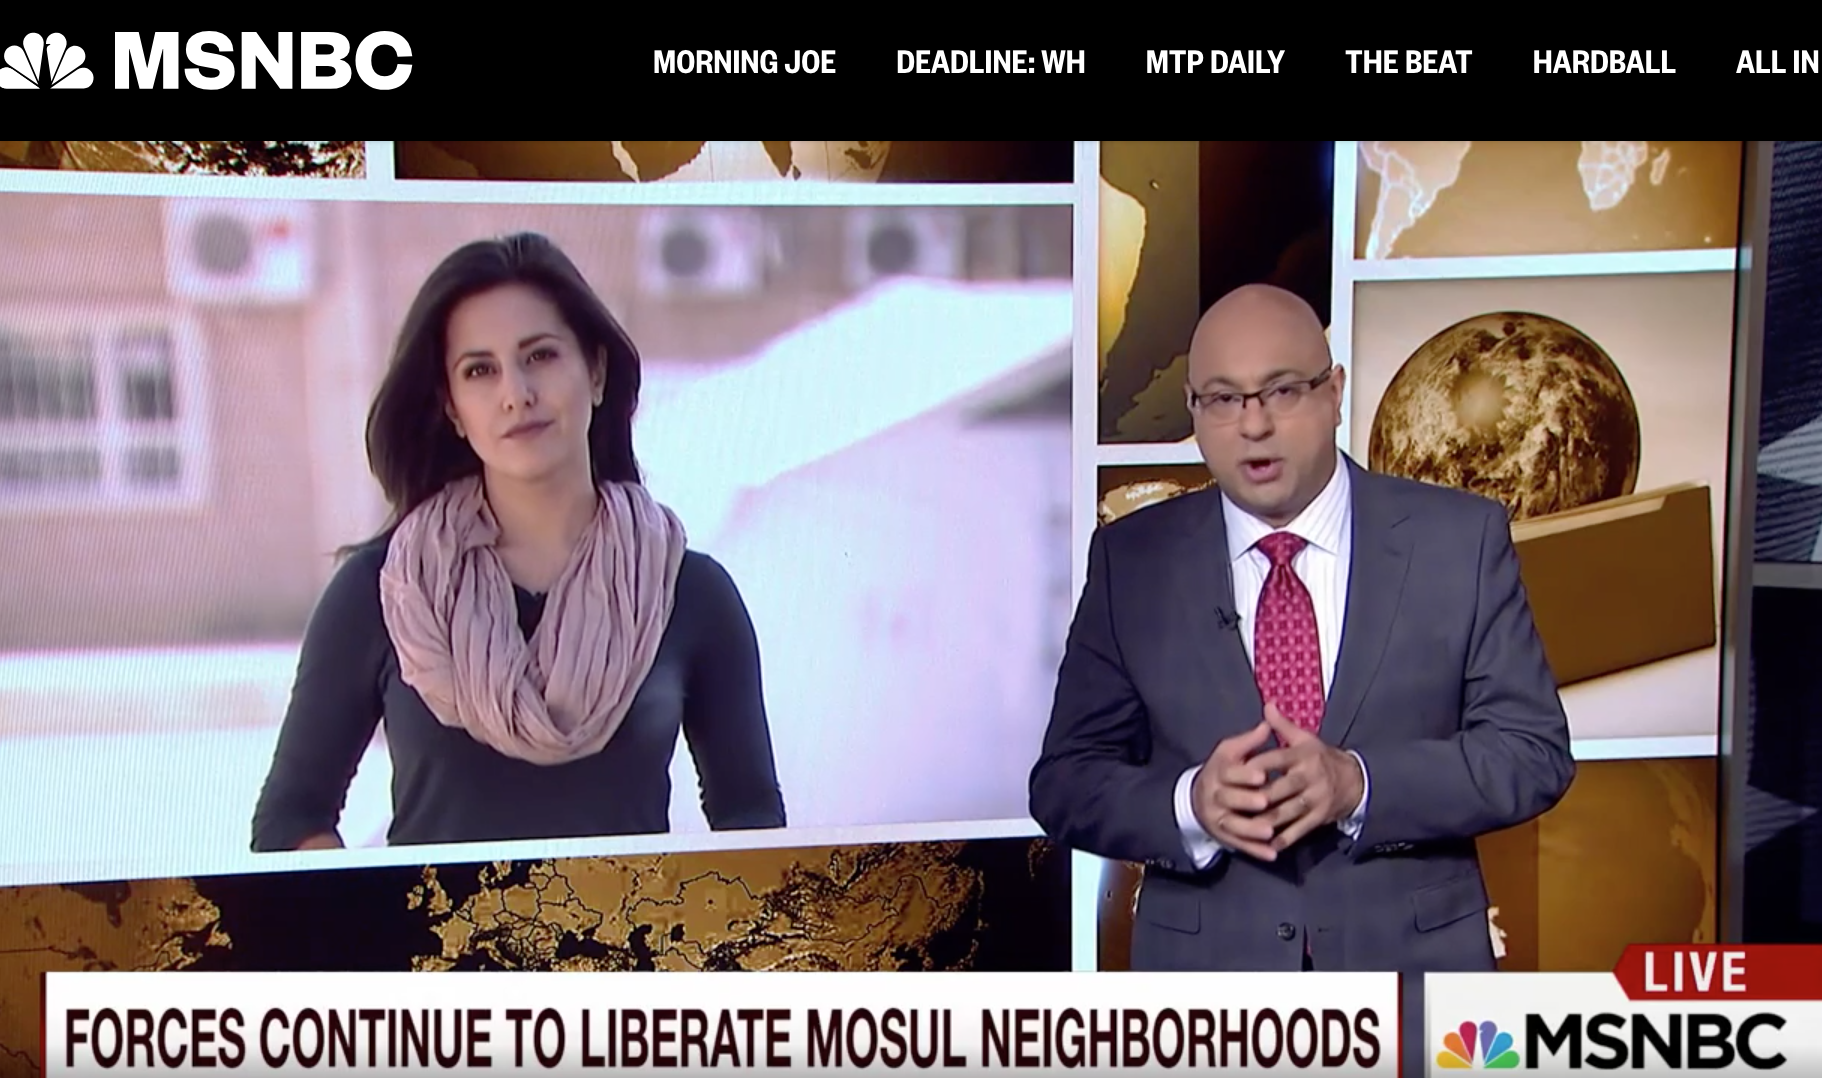 Lucy Kafanov on MSNBC from Iraq